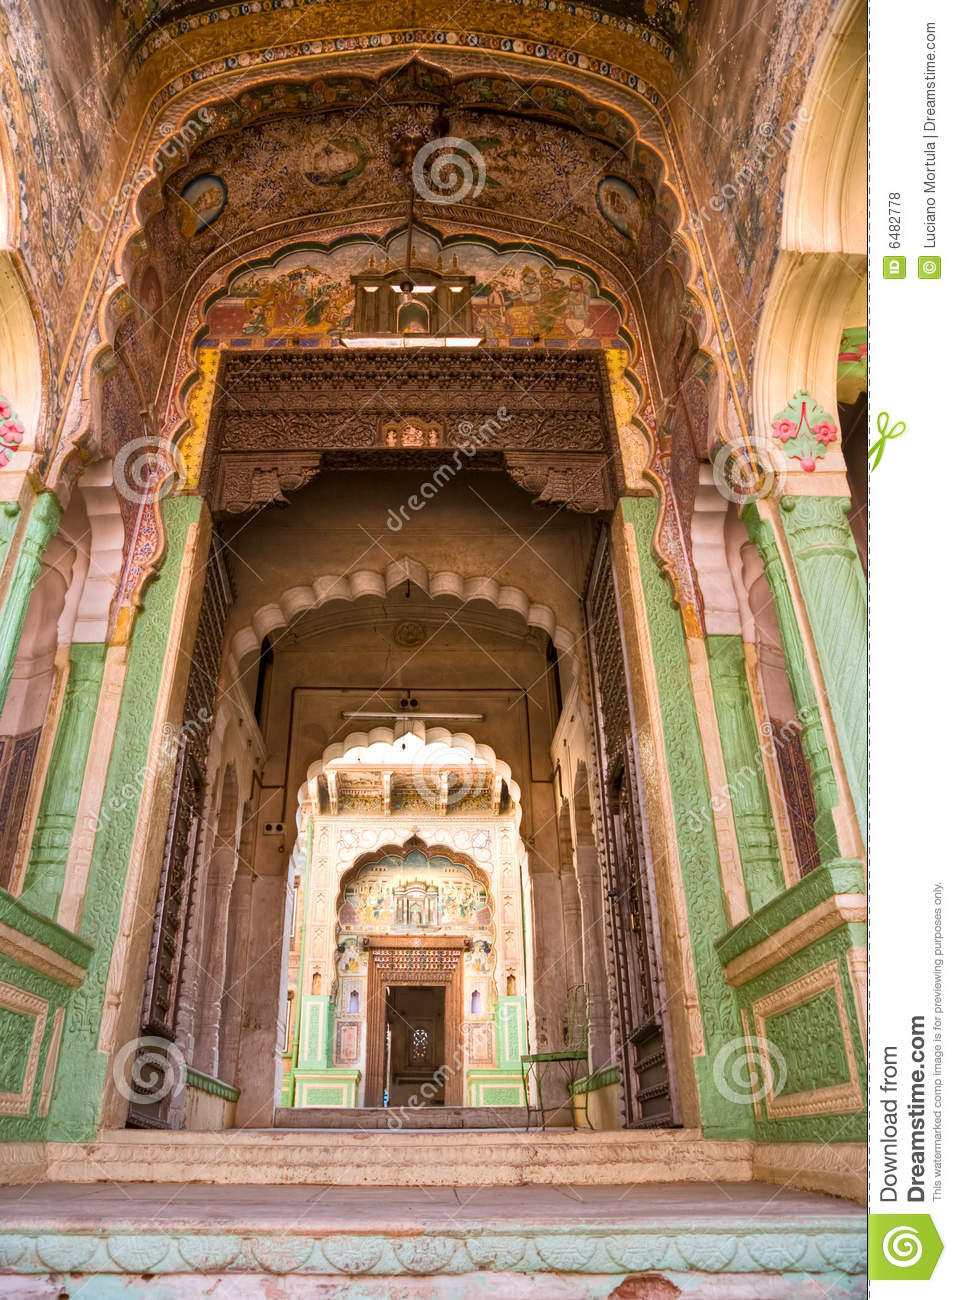 Architecture Inde Of Architecture Indienne Type Inde Photos Libres De Droits